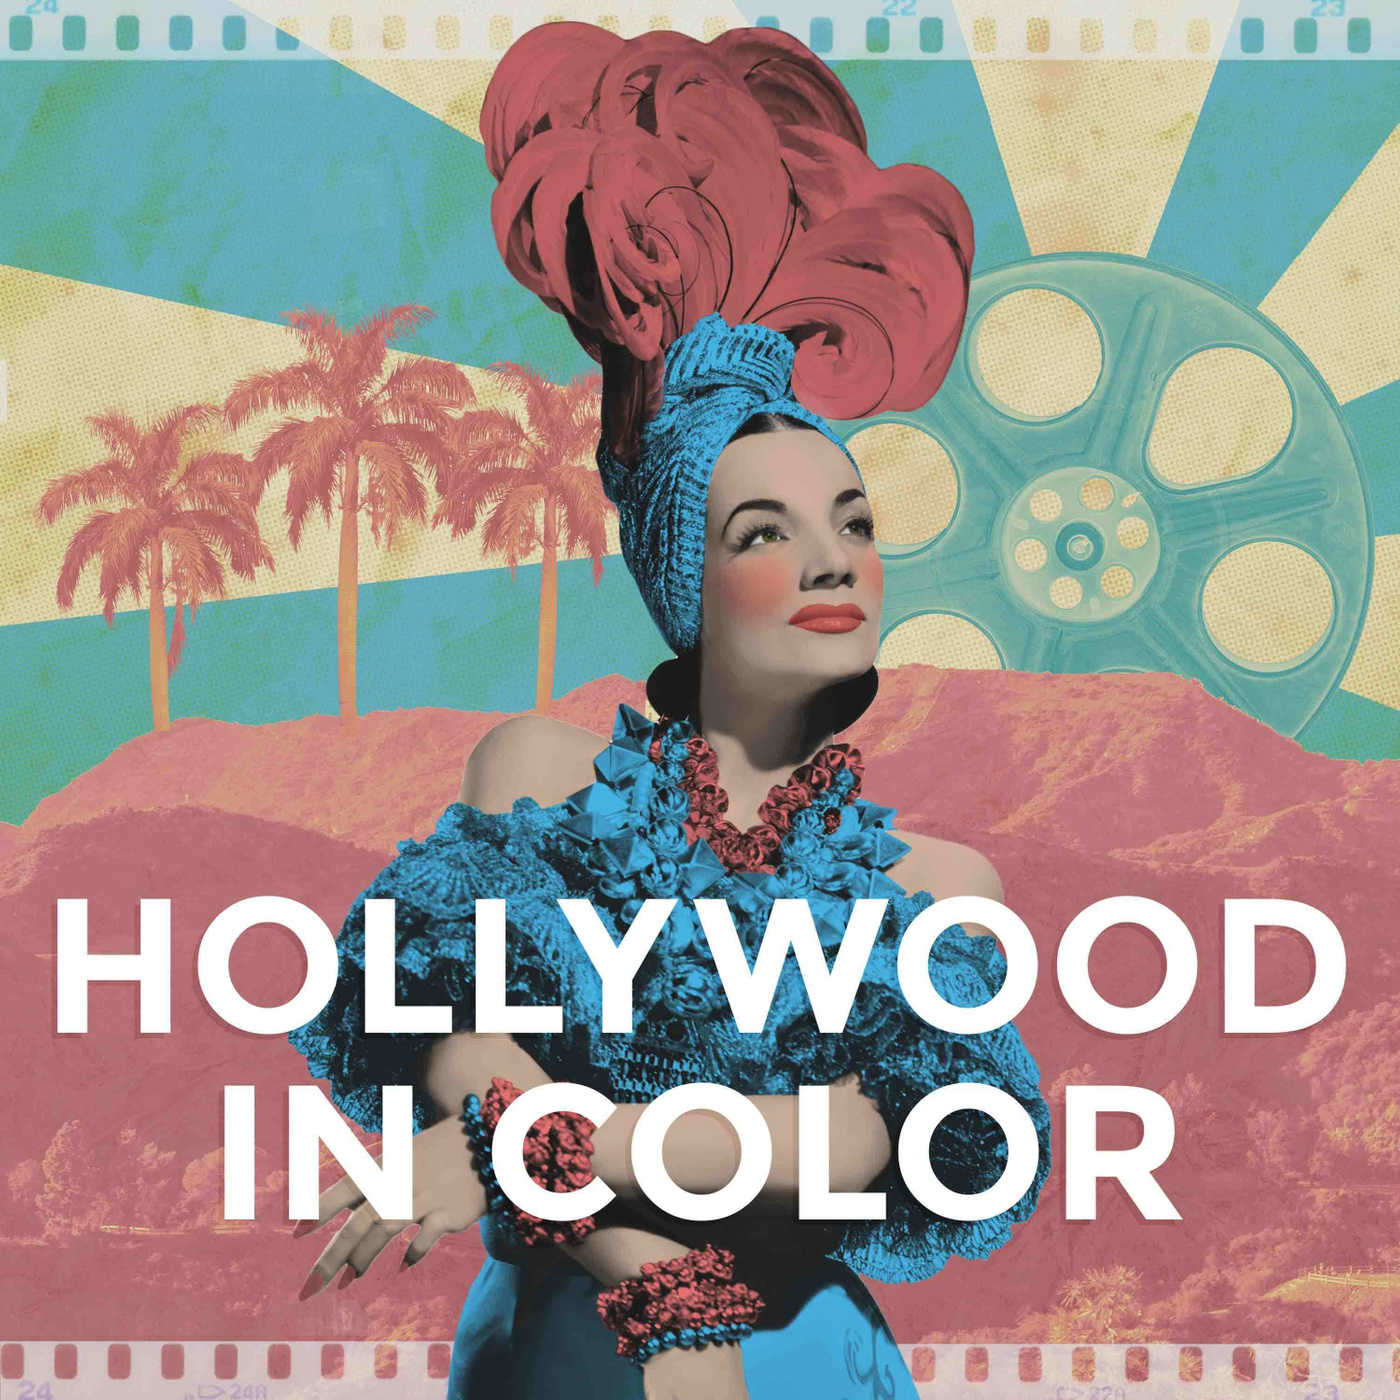 Introducing Hollywood in Color